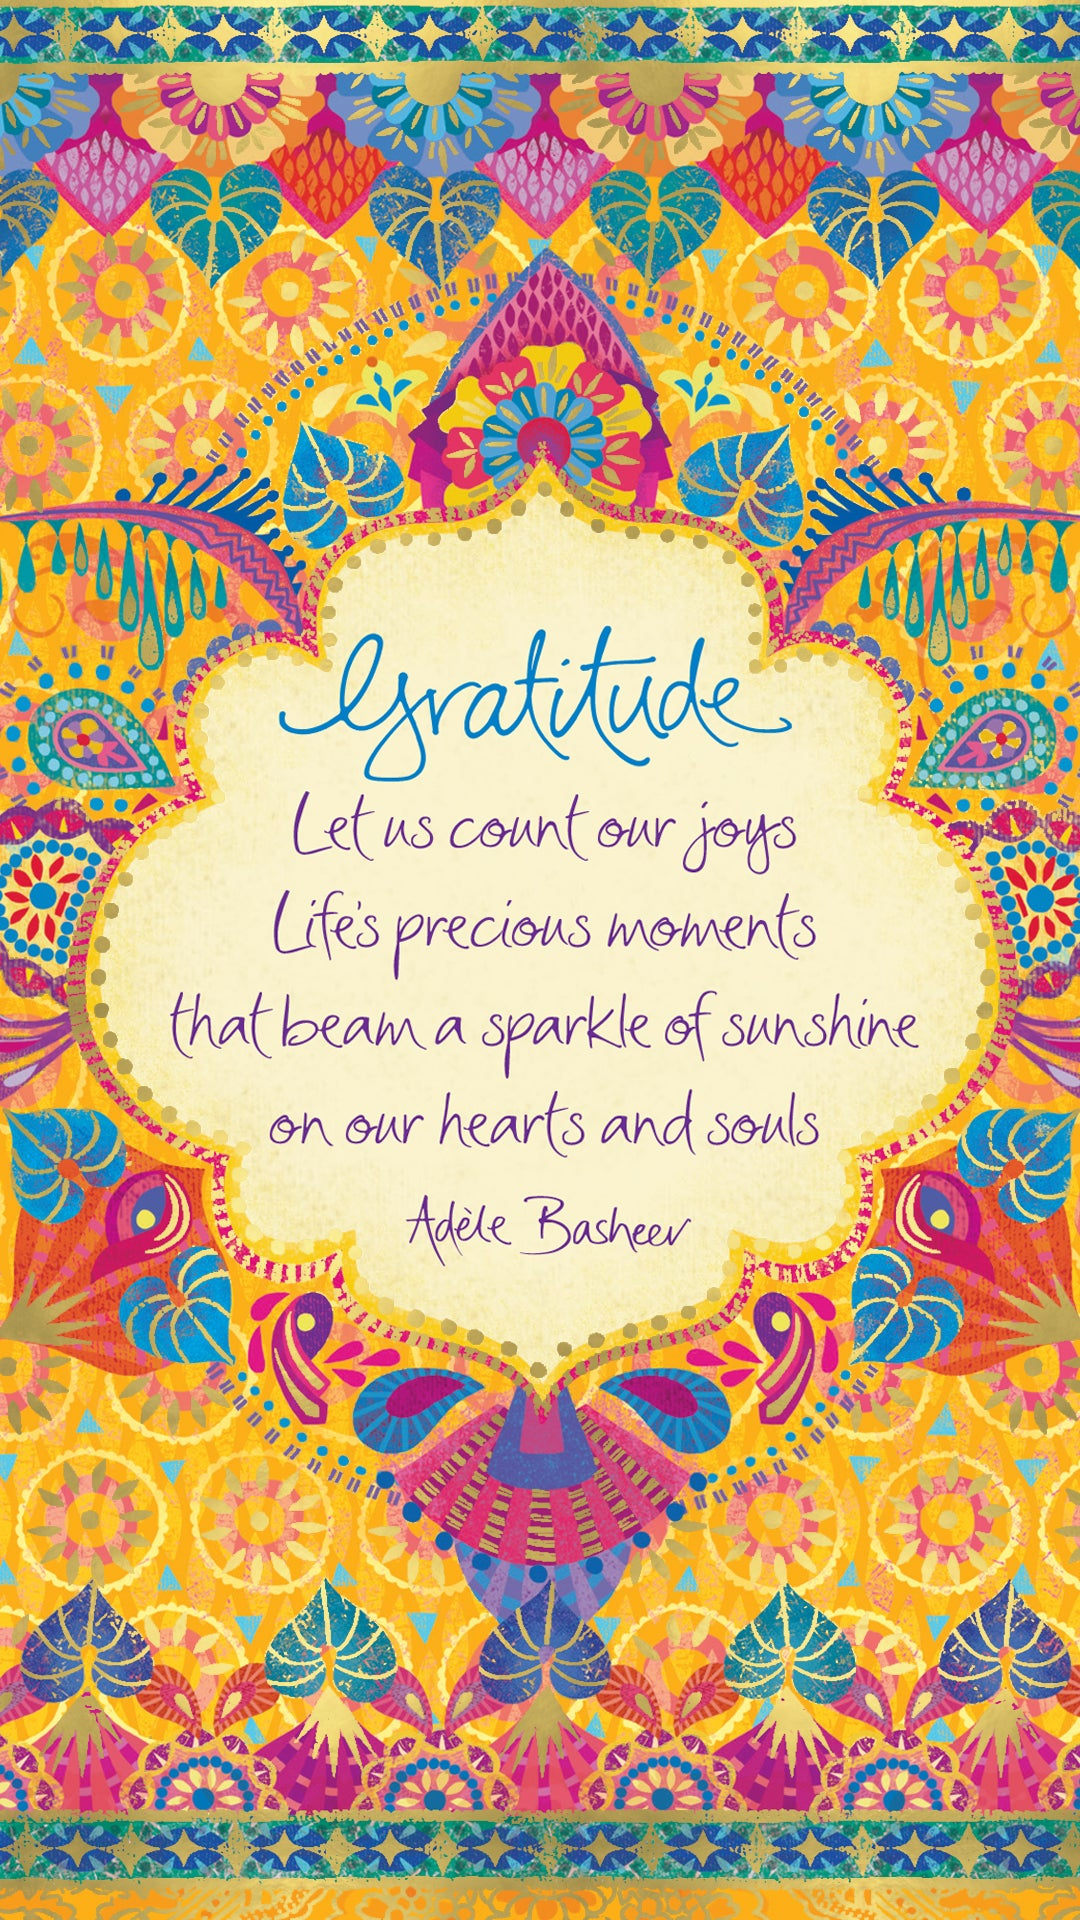 Gratitude Quote By Adèle Basheer - Free digital wallpaper